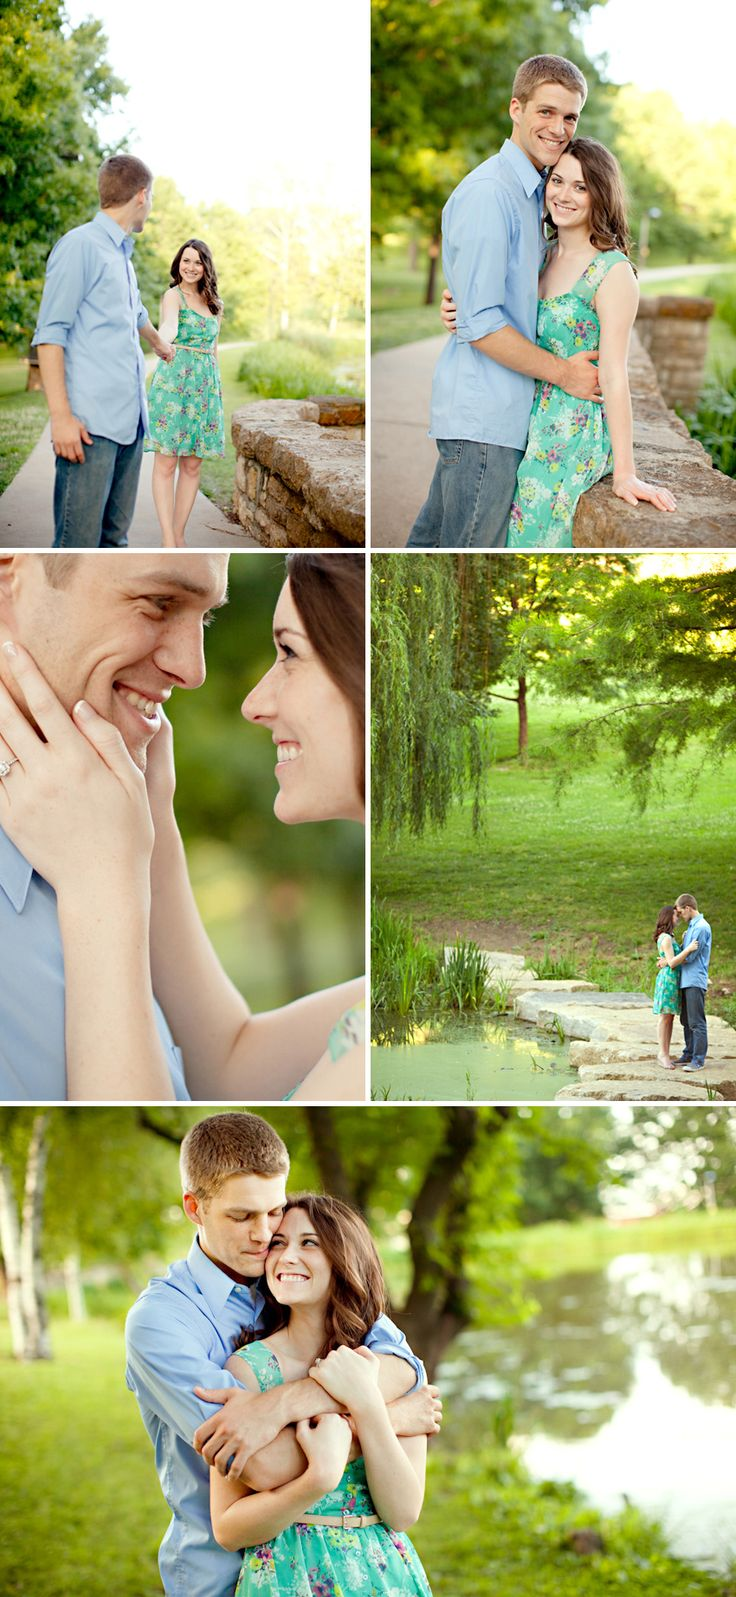 These are seriously the most perfect couple pictures ever.